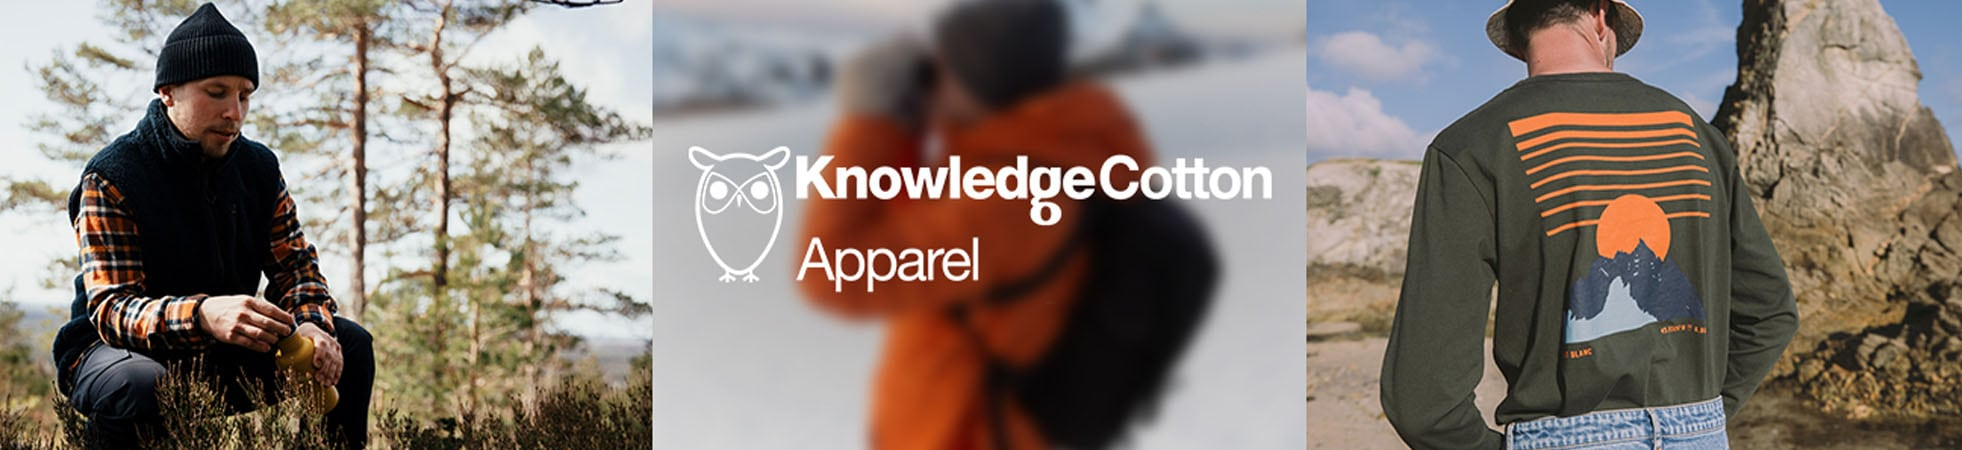 KnowledgeCotton Apparel Arnhem